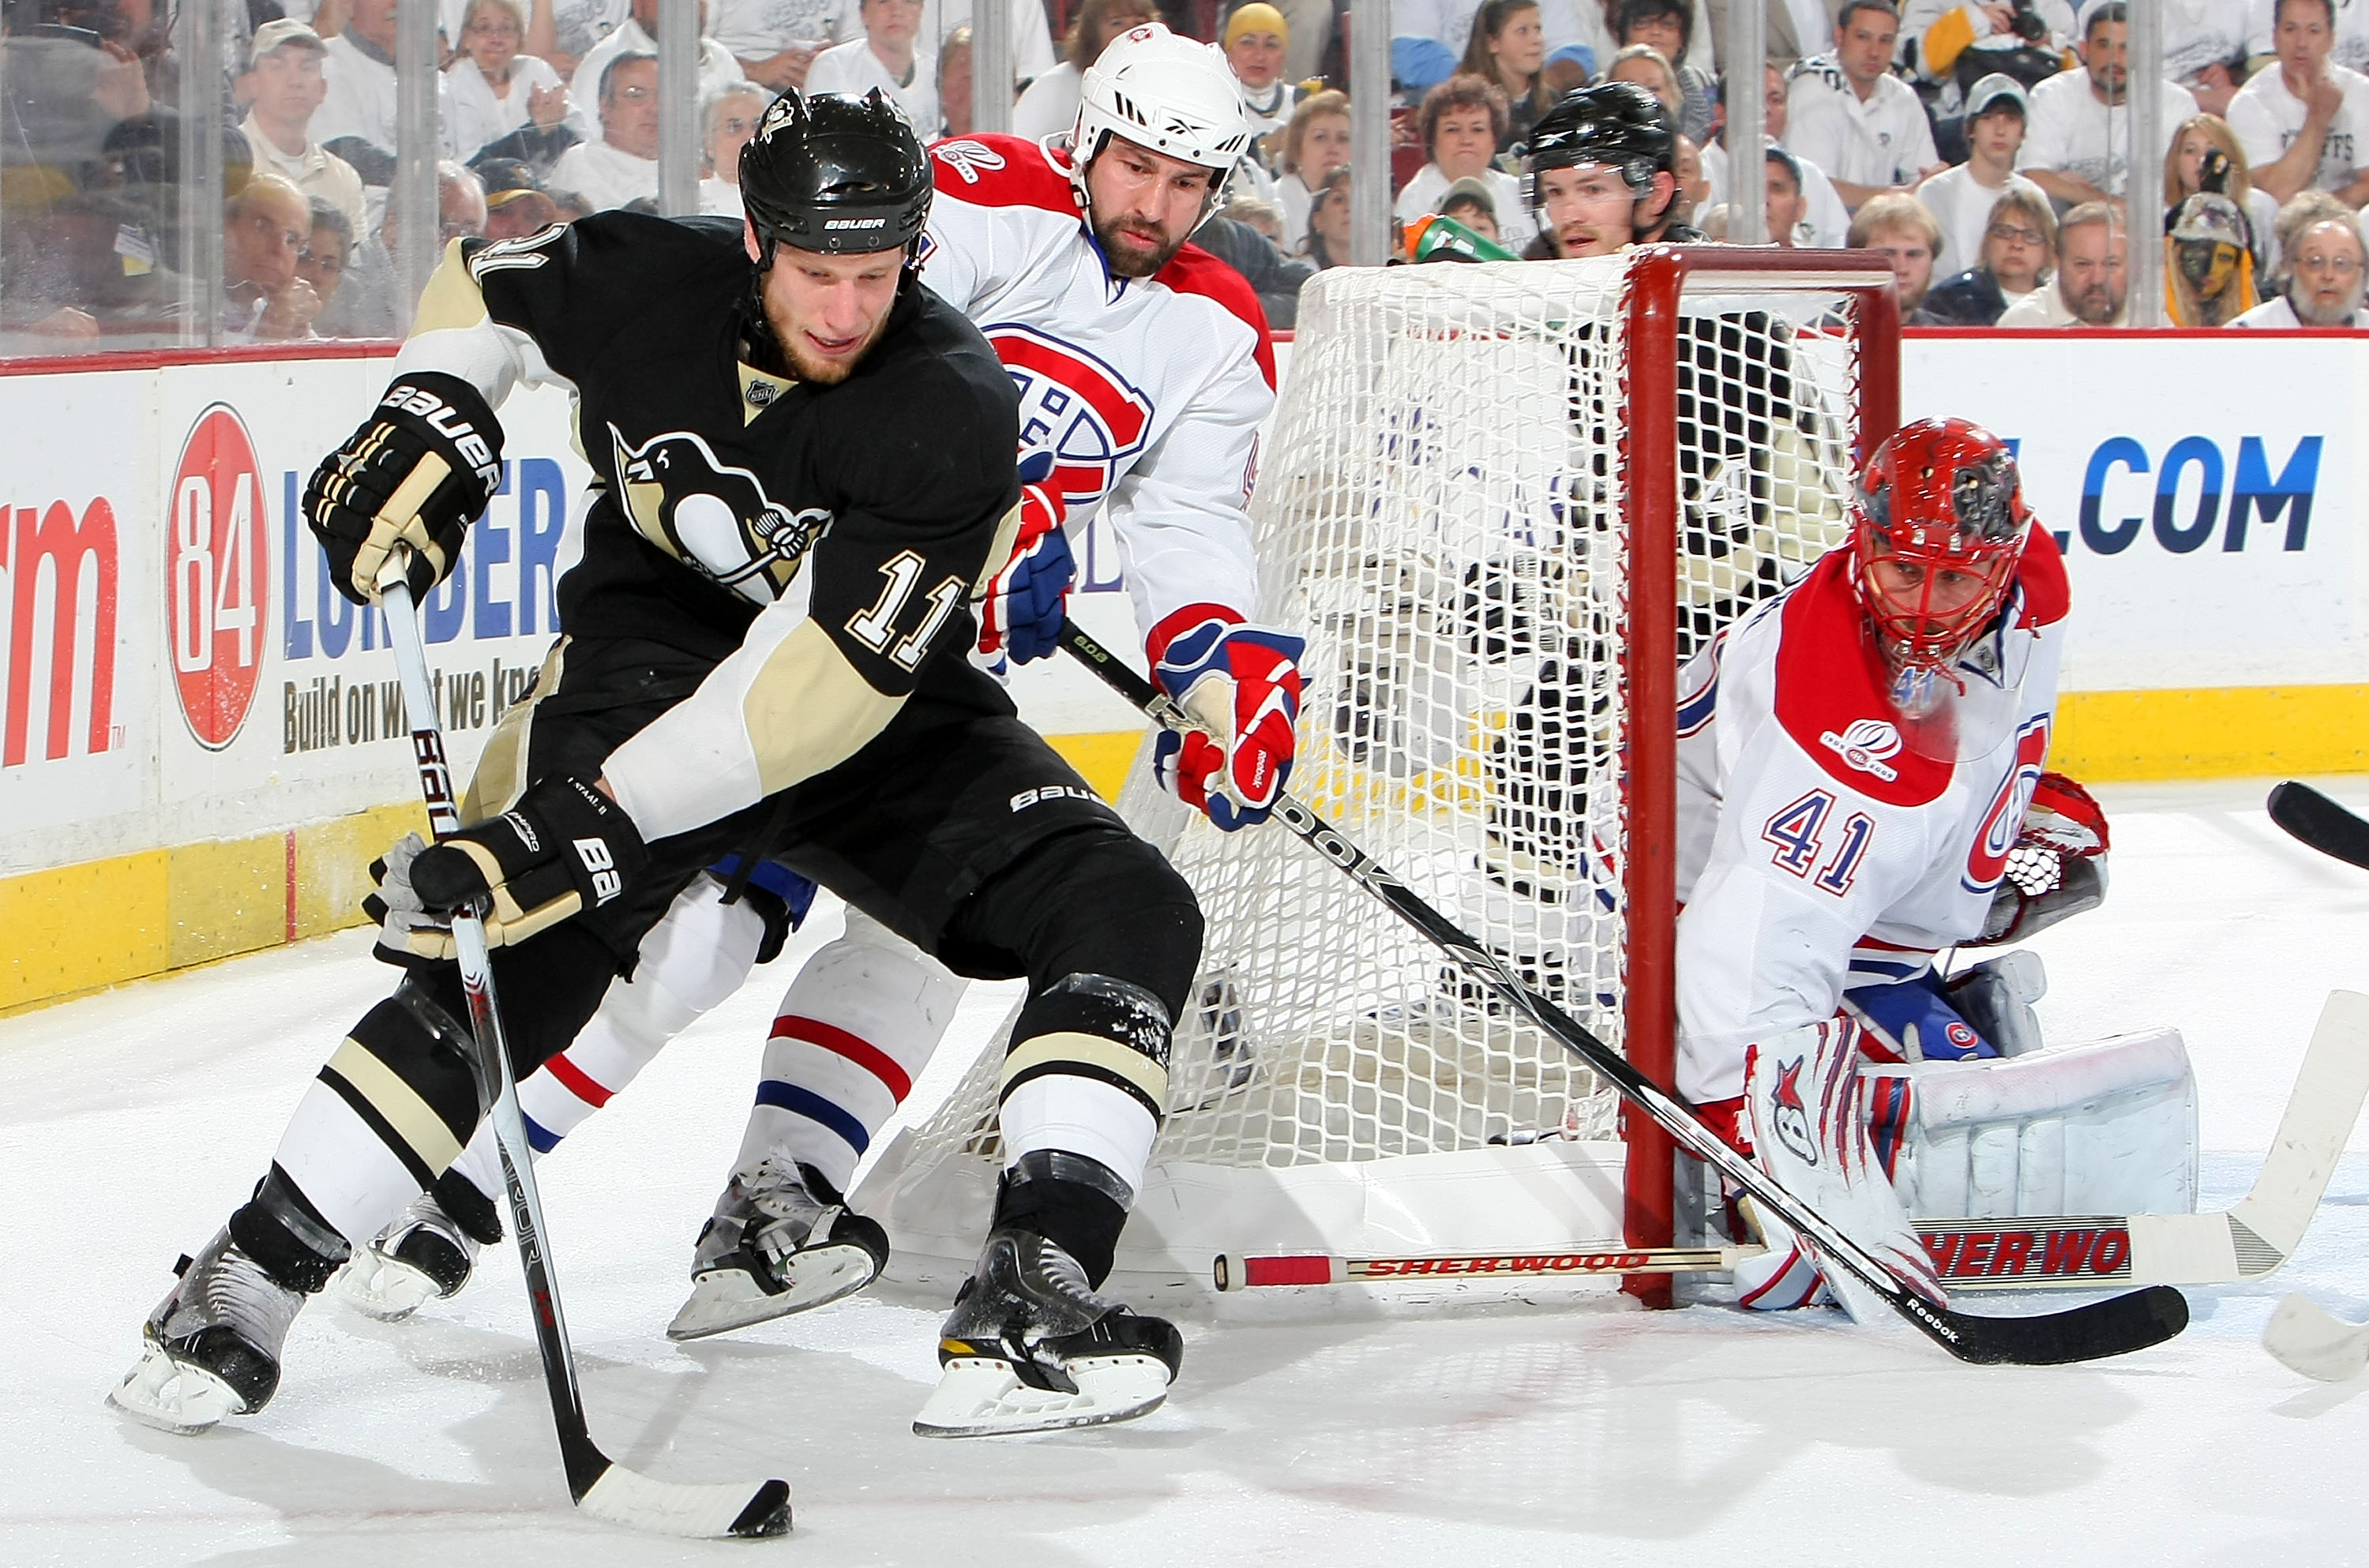 PITTSBURGH - MAY 12:  Jordan Staal #11 of the Pittsburgh Penguins attempts a wrap around on Jaroslav Halak #41 of the Montreal Canadiens as Roman Hamrlik #44 of the Canadiens defends in Game Seven of the Eastern Conference Semifinals during the 2010 Stanl